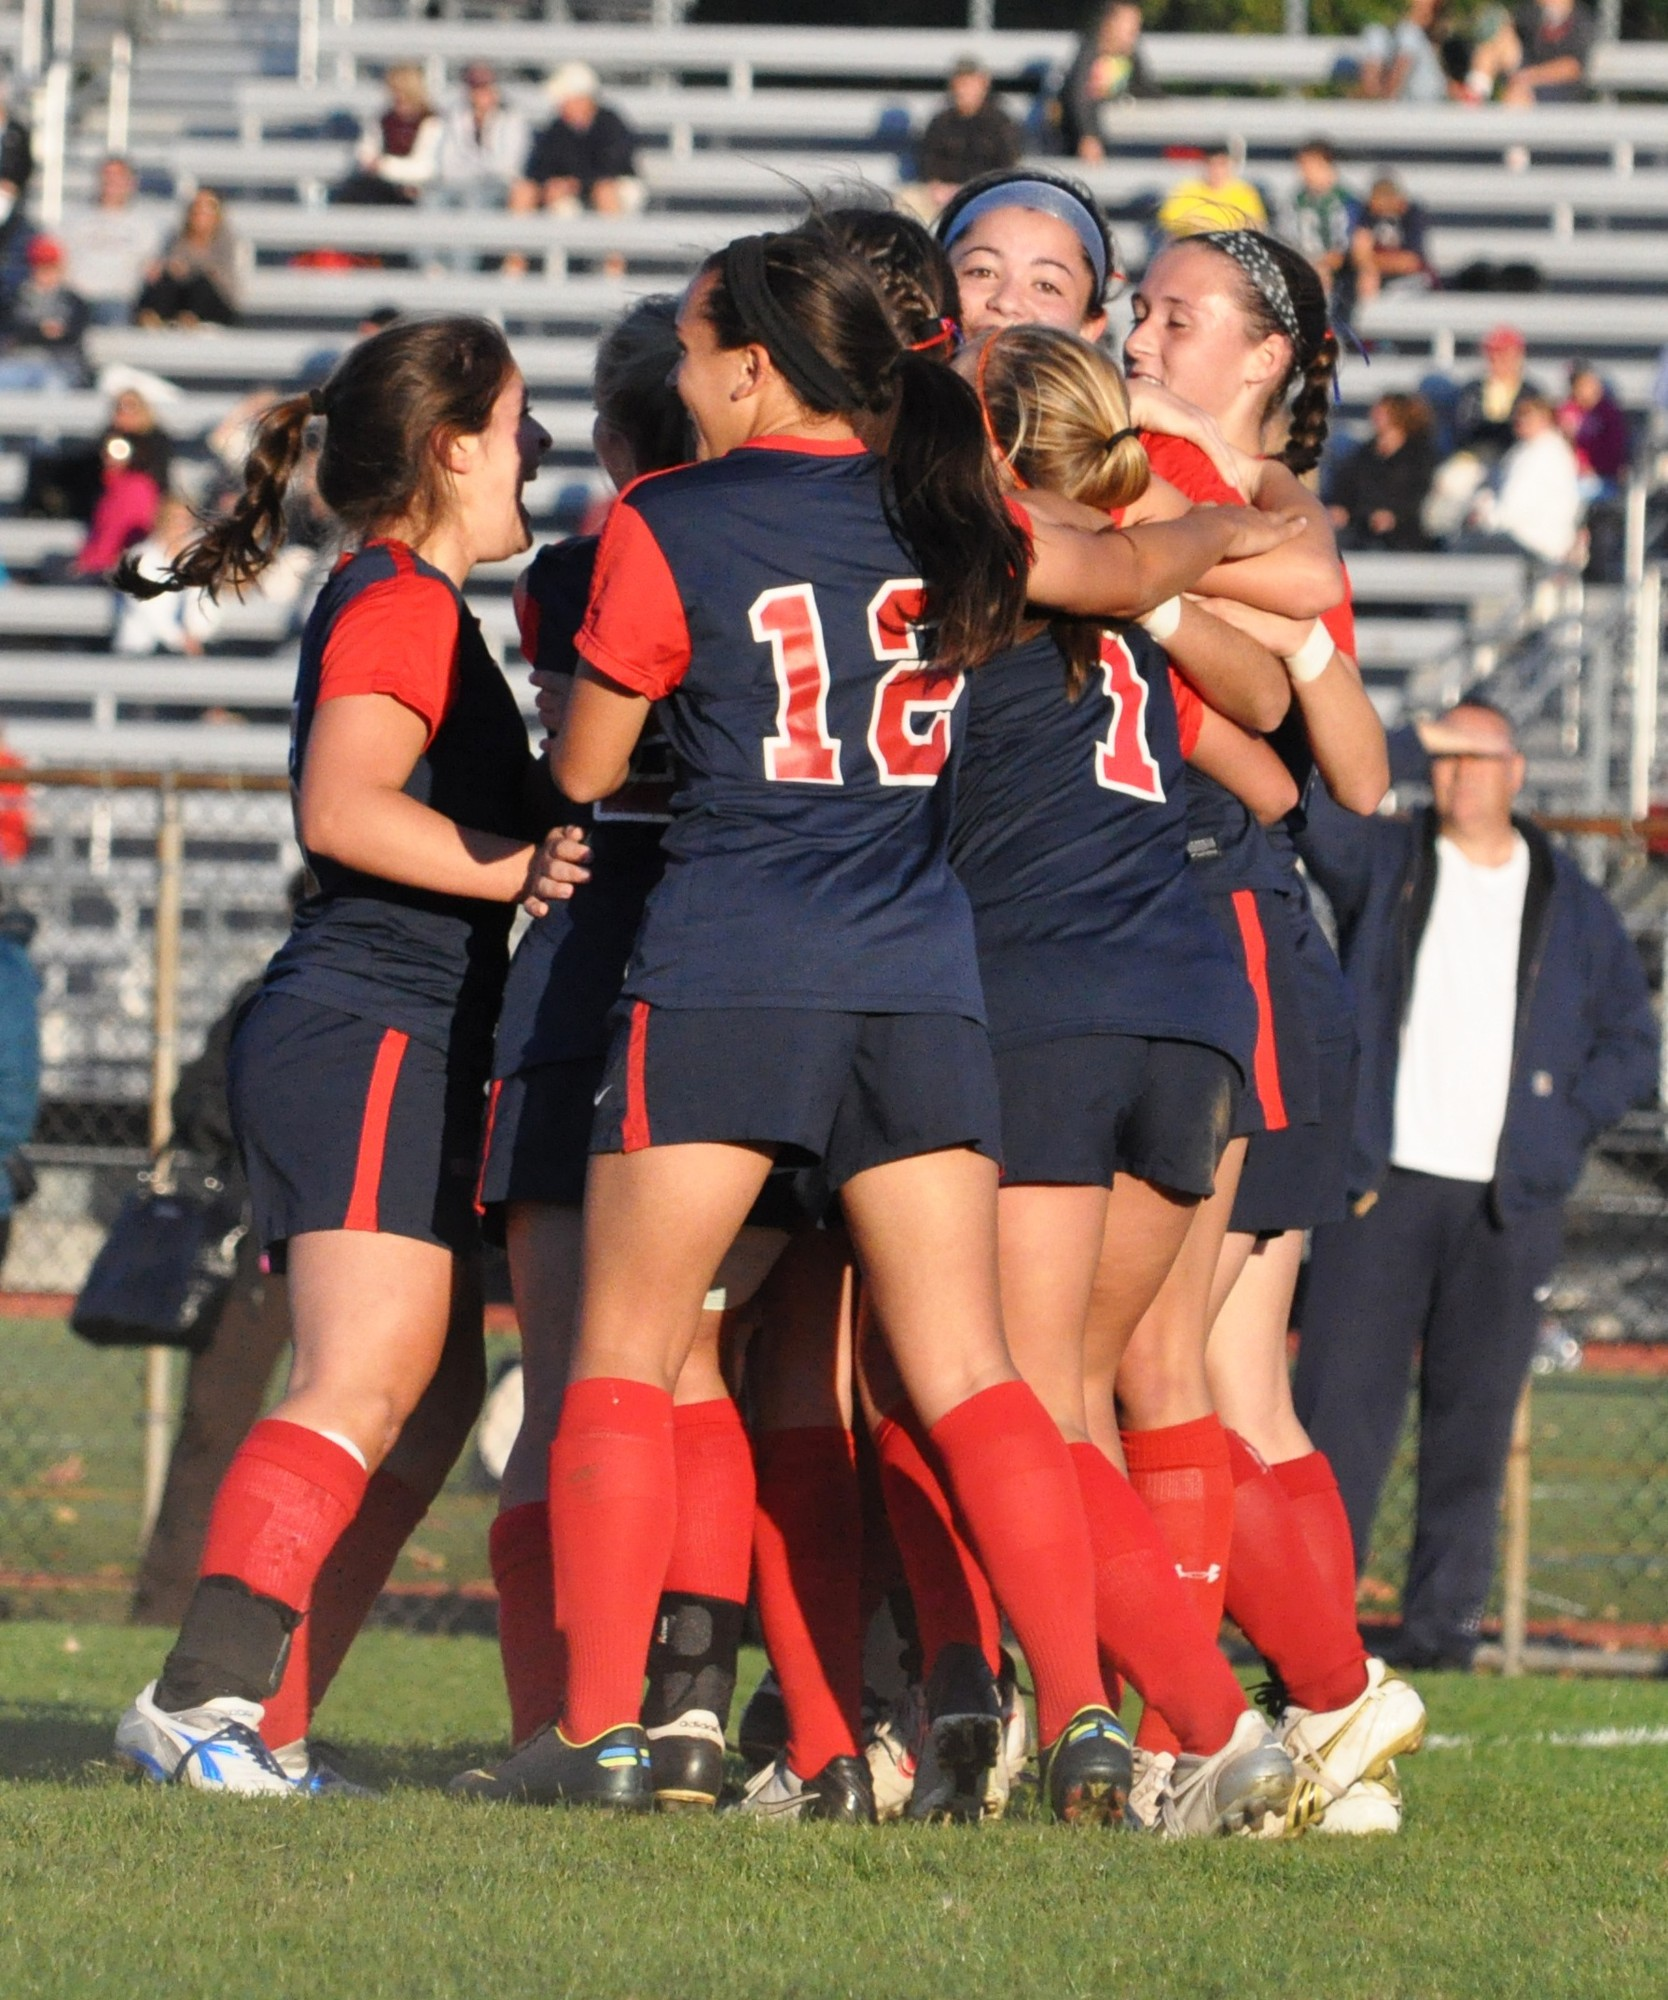 The Lady Cyclones celebrated after Juliana Pellegrini's first-half goal in Monday's 2-1 win at Garden City that clinched the conference title.